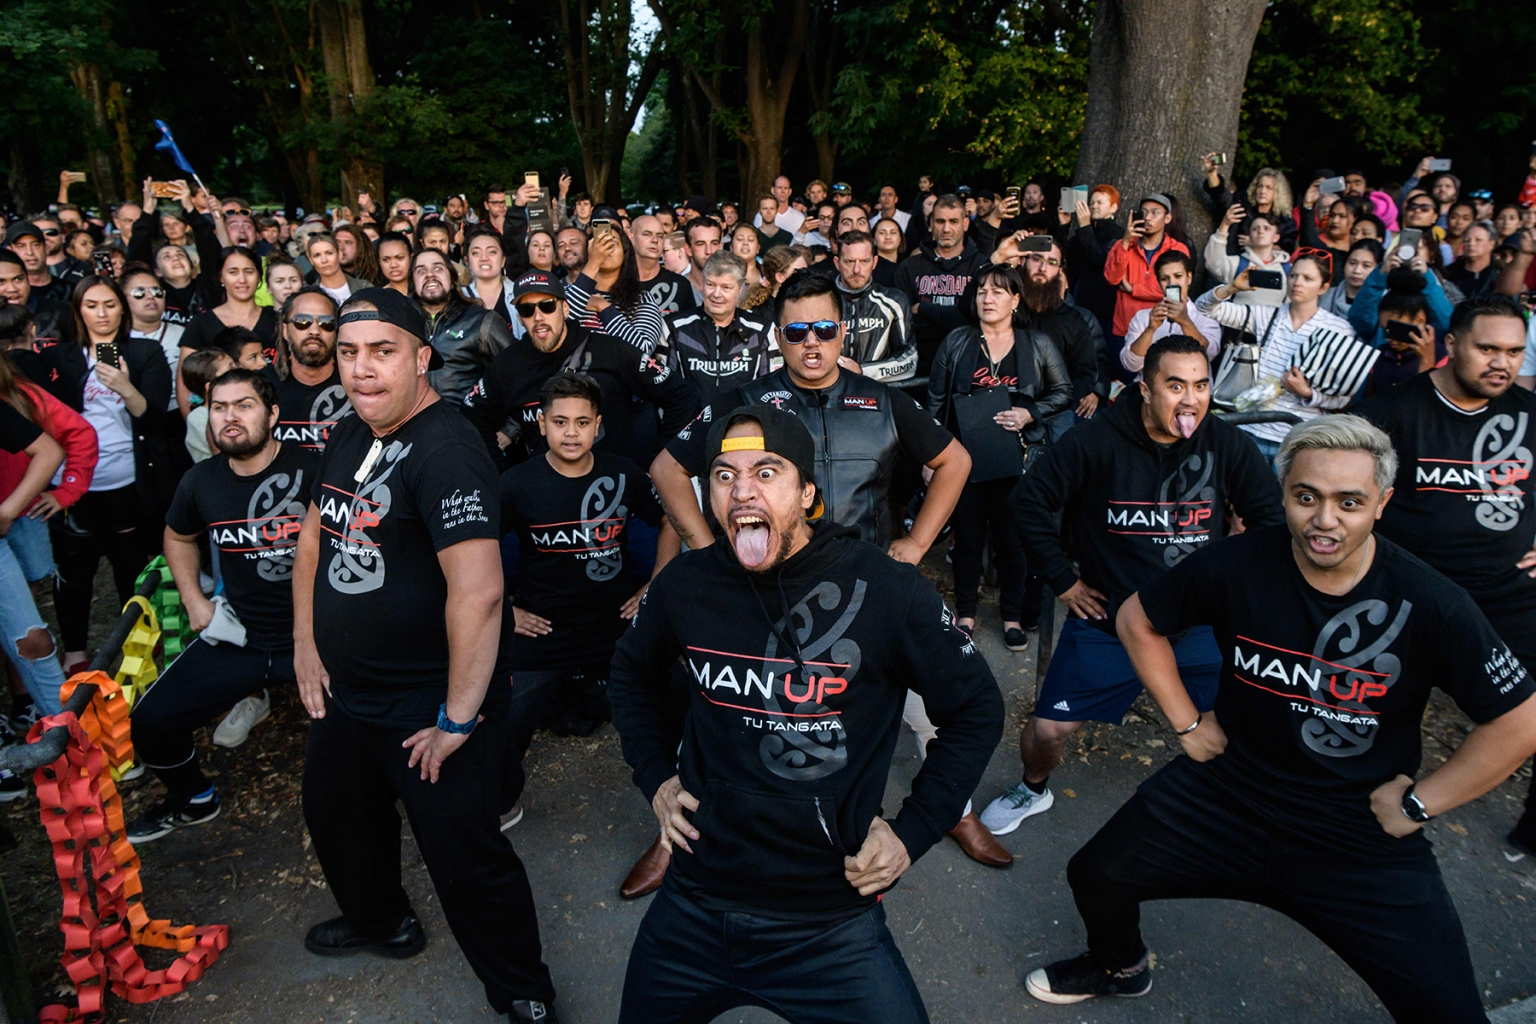 Members of different biker gangs perform the haka—a ceremonial Maori dance—as a tribute to victims in Christchurch, New Zealand, on March 20. ANTHONY WALLACE/AFP/Getty Images